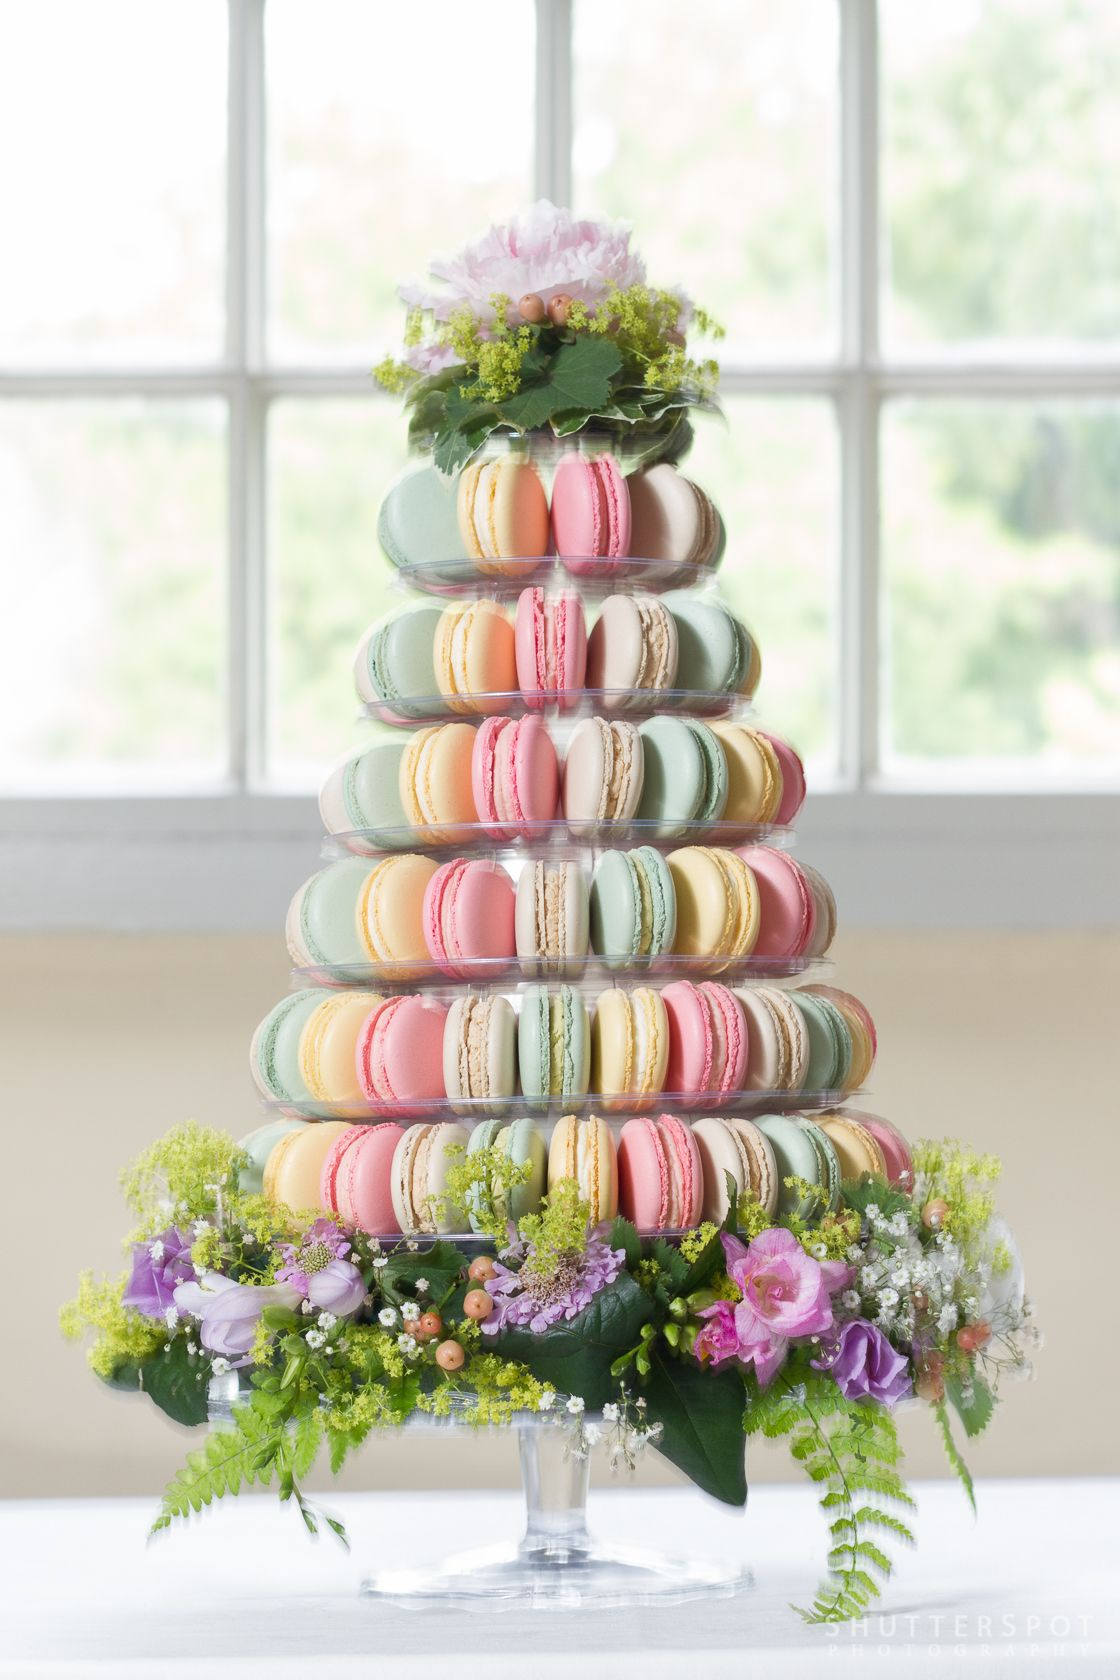 Medici Macarons Is Now Closed